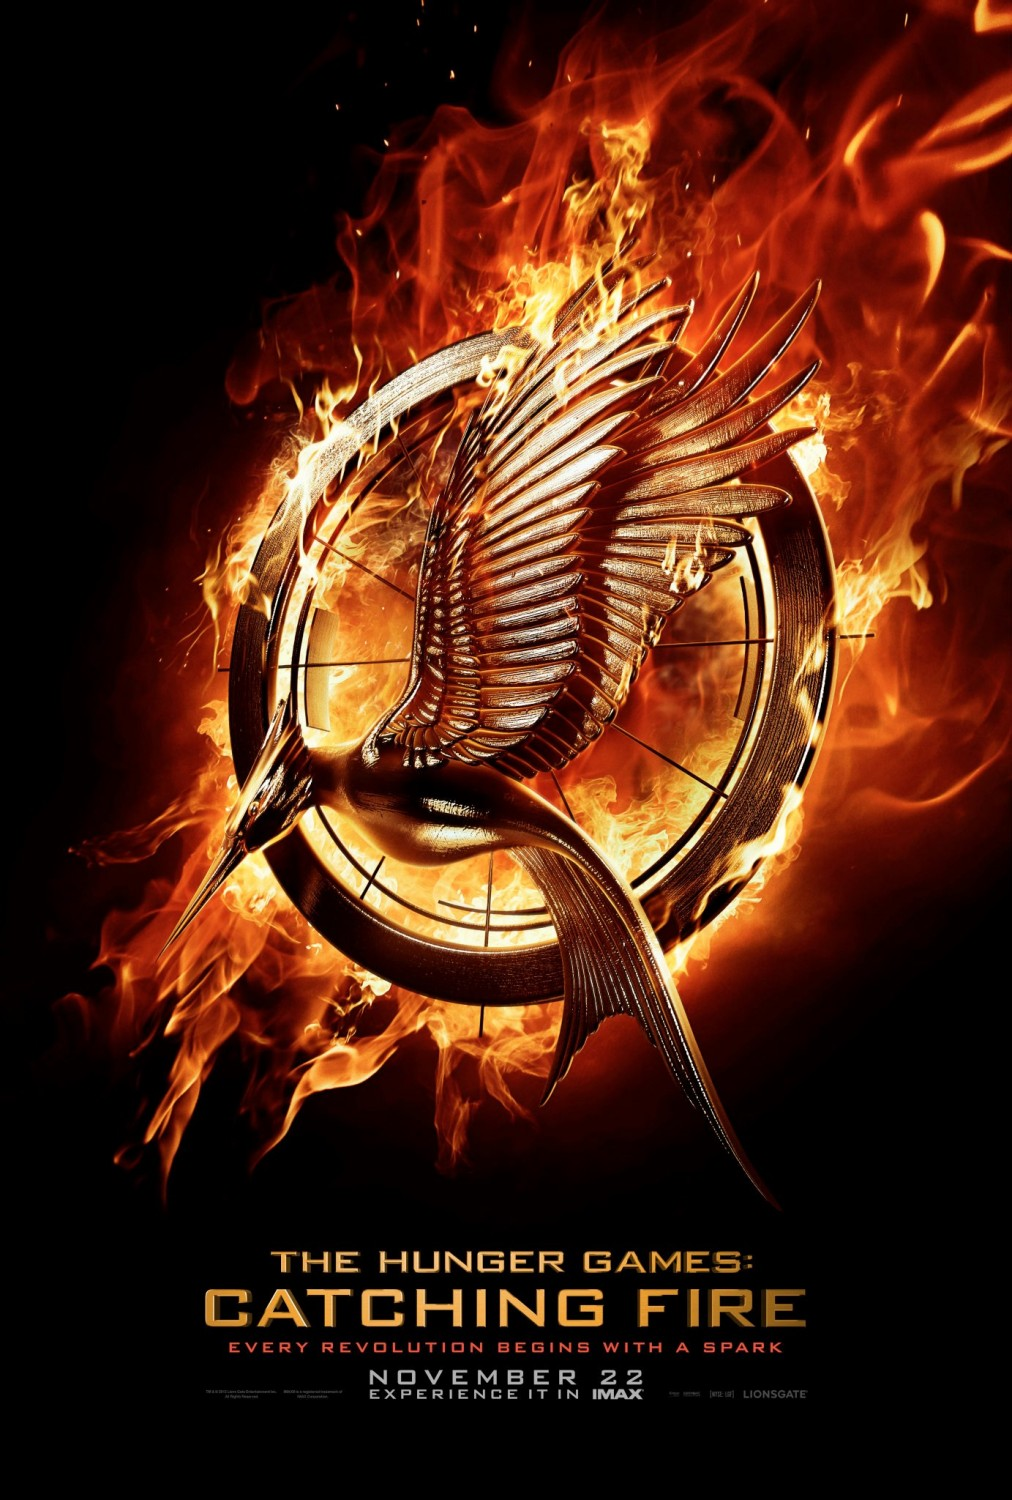 Movie Posters | Bollywood Hollywood: The Hunger Games ...